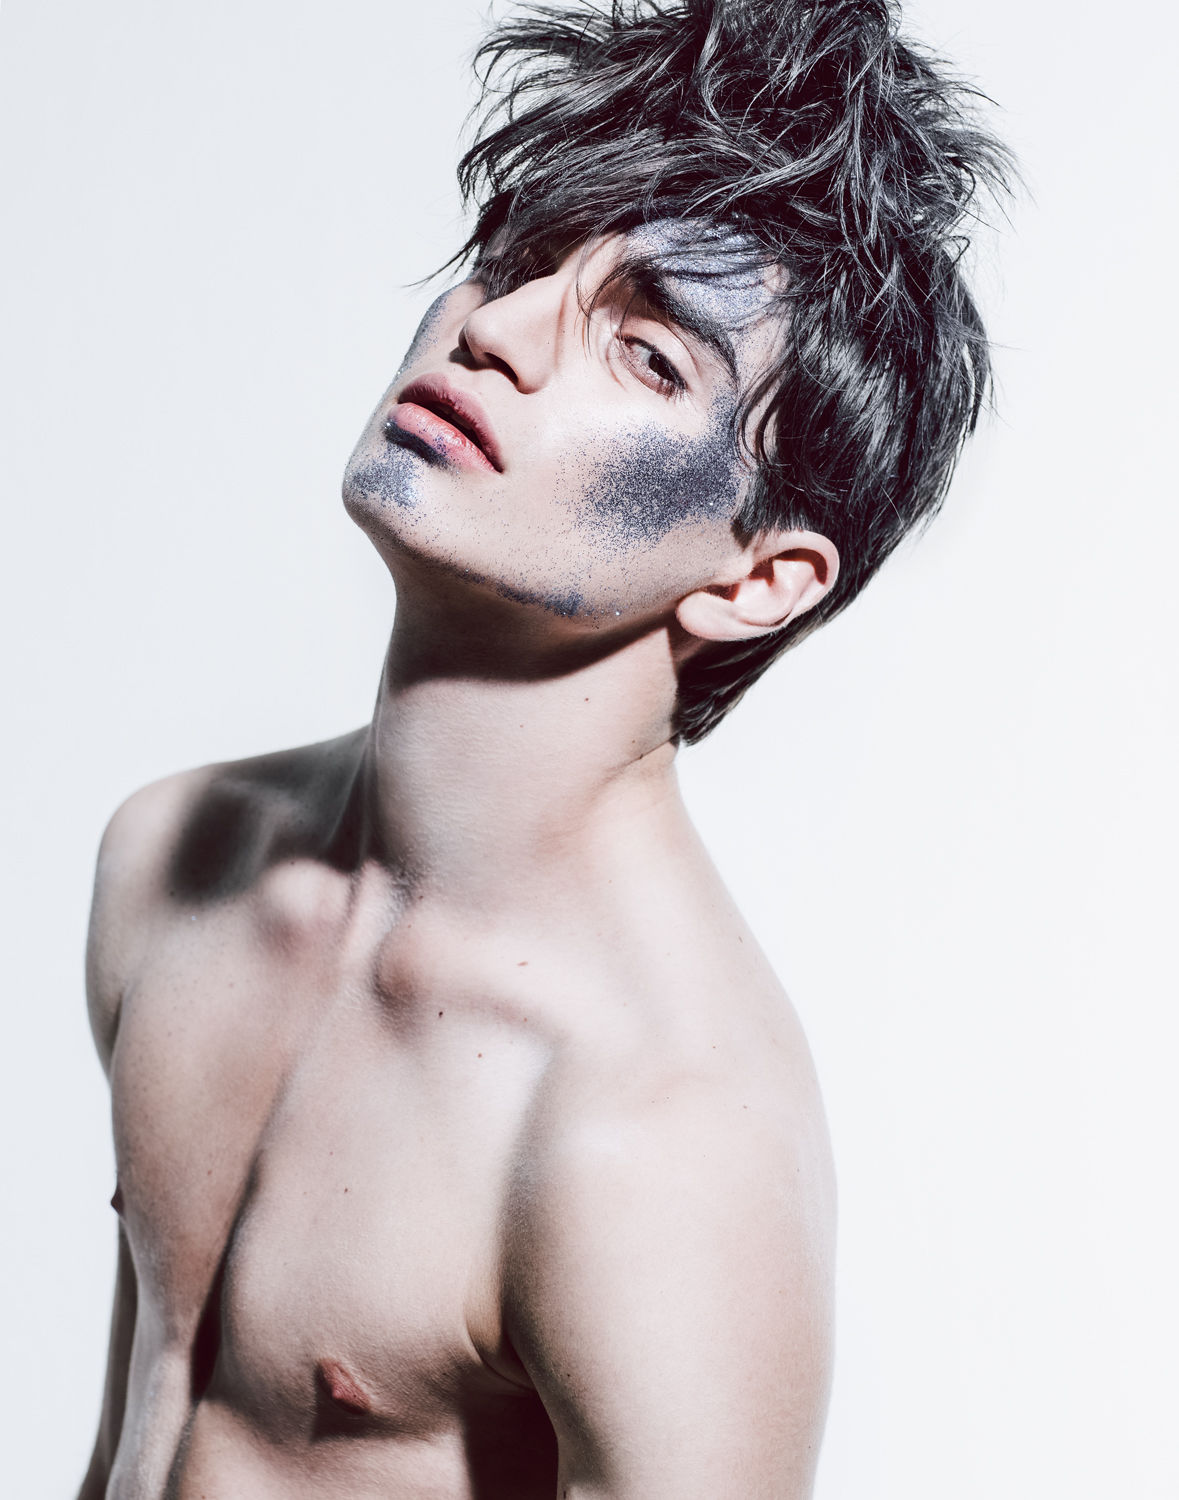 BLOSSOM MANAGEMENT: Tony Lundström (Grooming) for Fucking Young